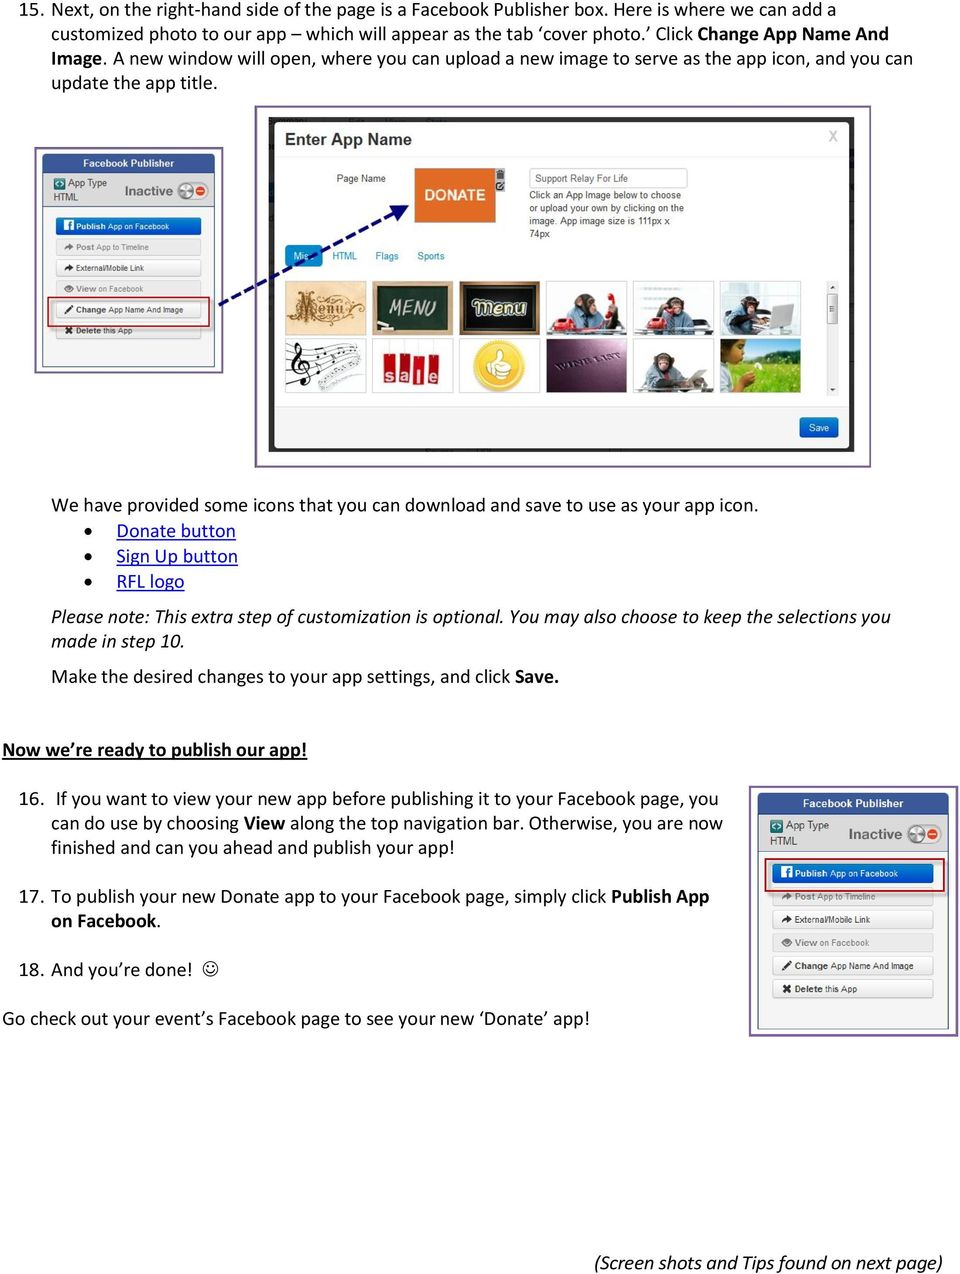 Relay Online How To: Add an App to Your Event Facebook Page +